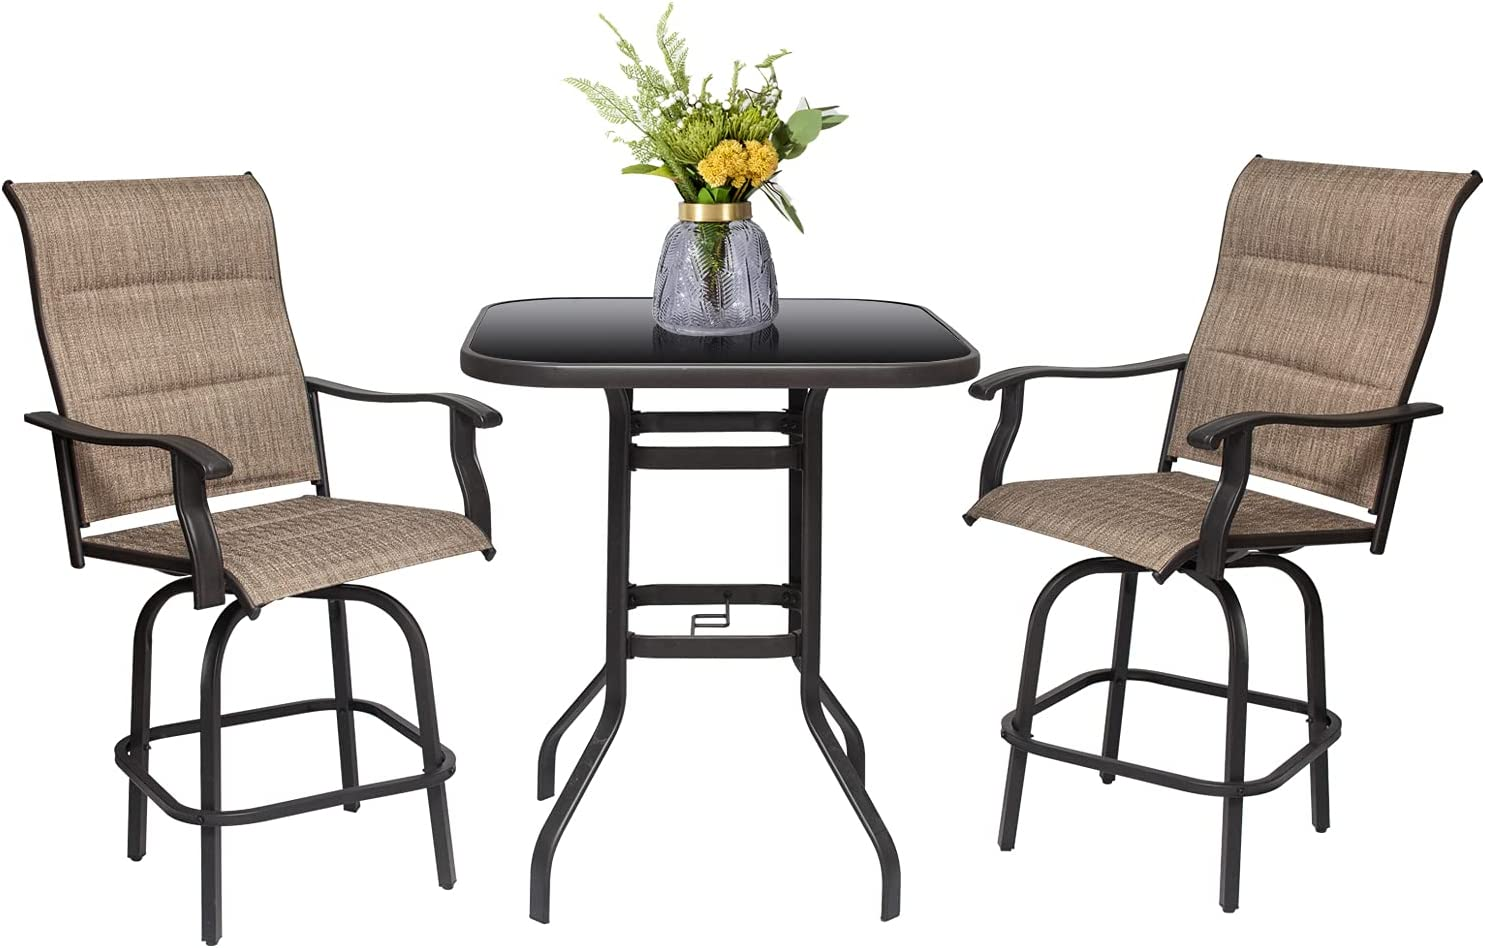 3PCS Outdoor Furniture Patio Height Bar Large-scale Bargain sale Bistro All-Wea Set Stool